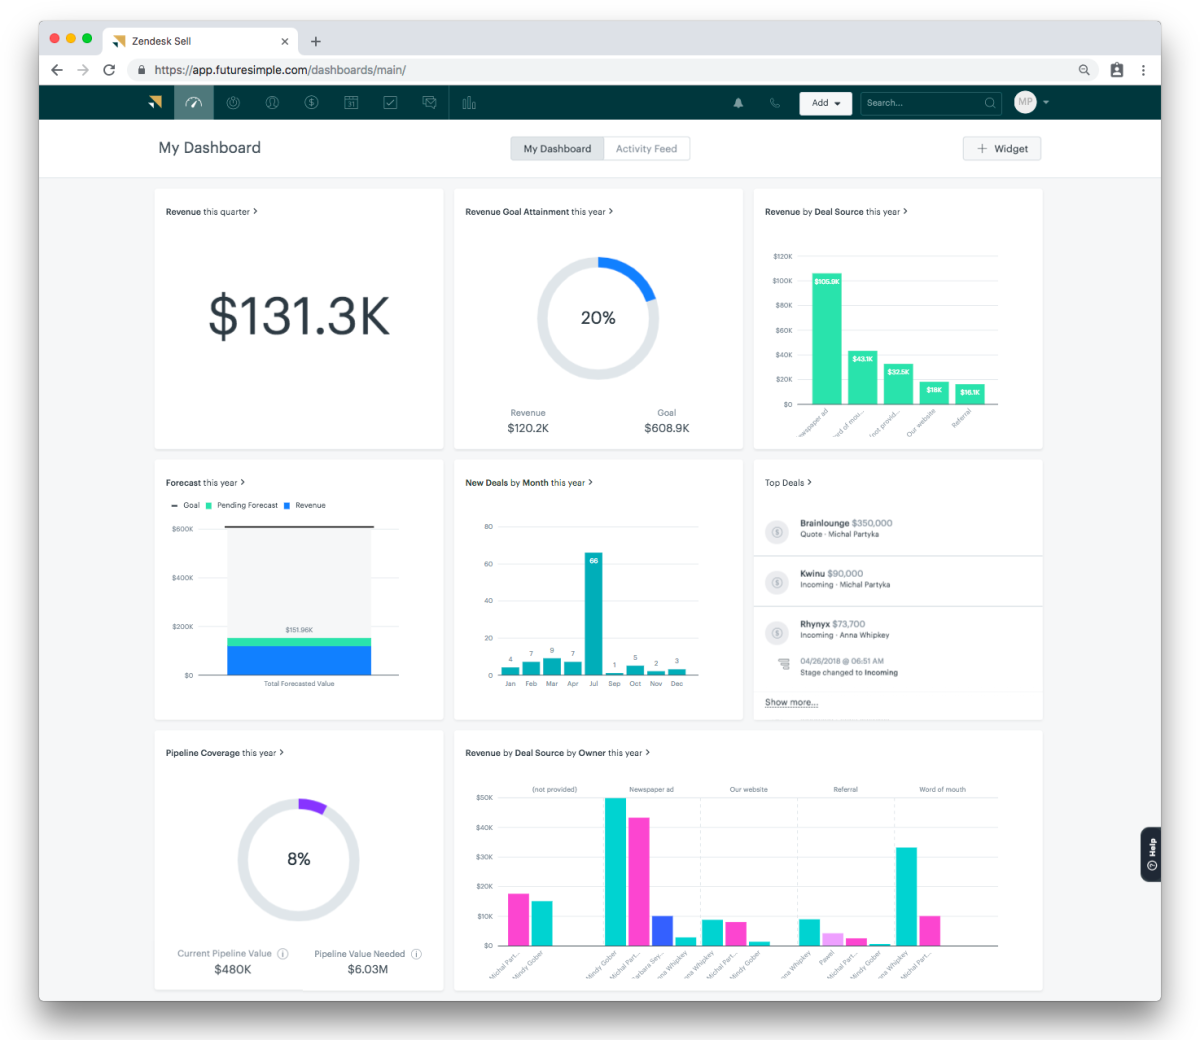 zendesk sell dashboard